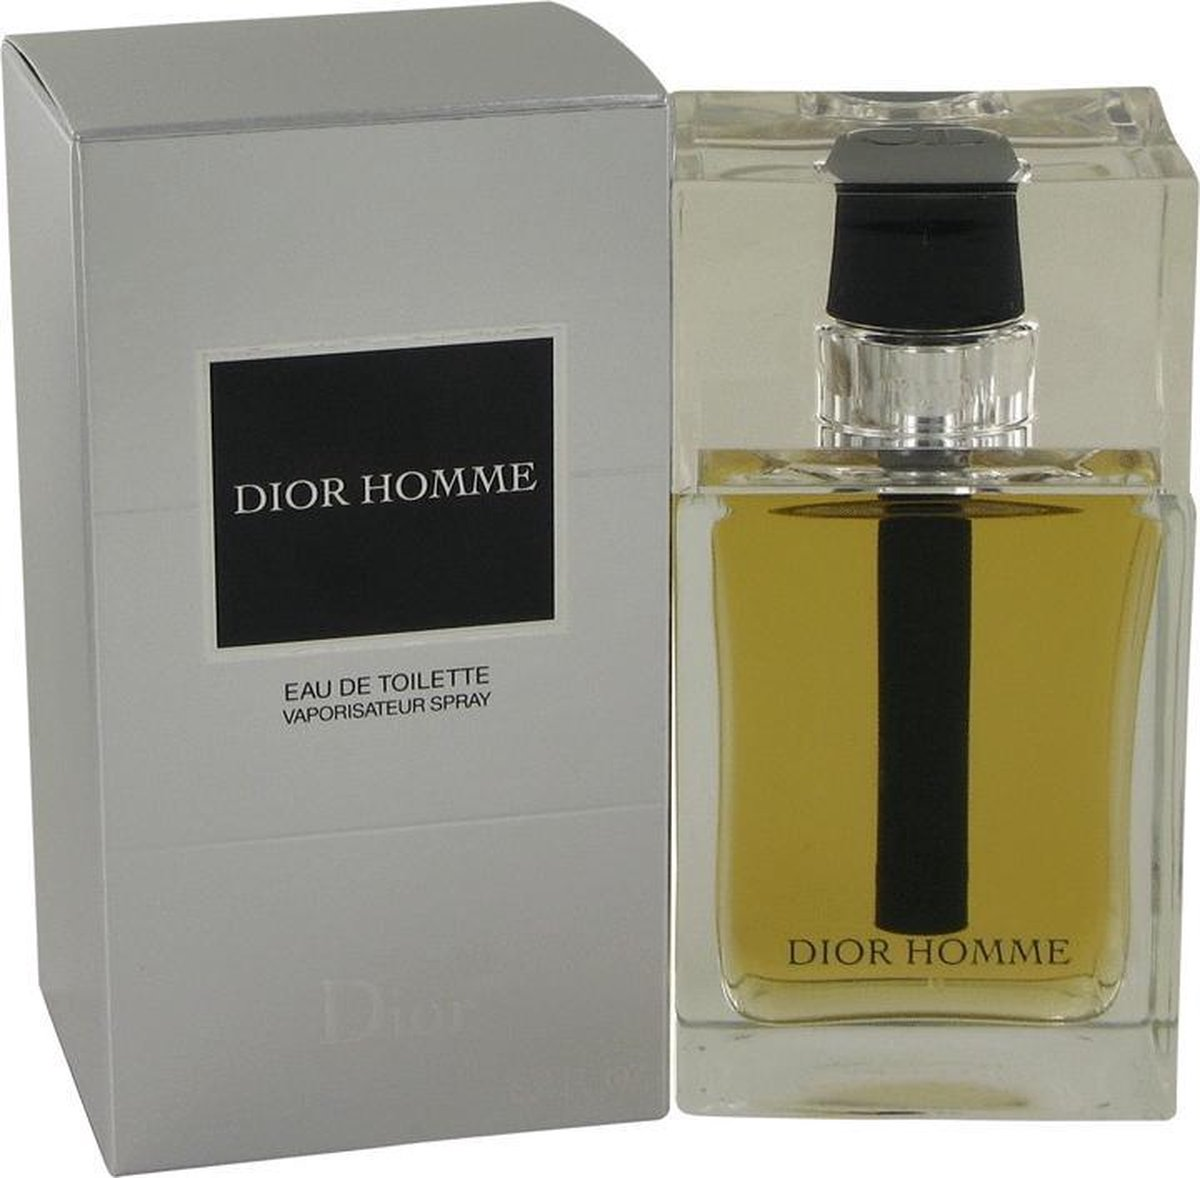 Christian Dior Homme Eau de Toilette 100ml Spray